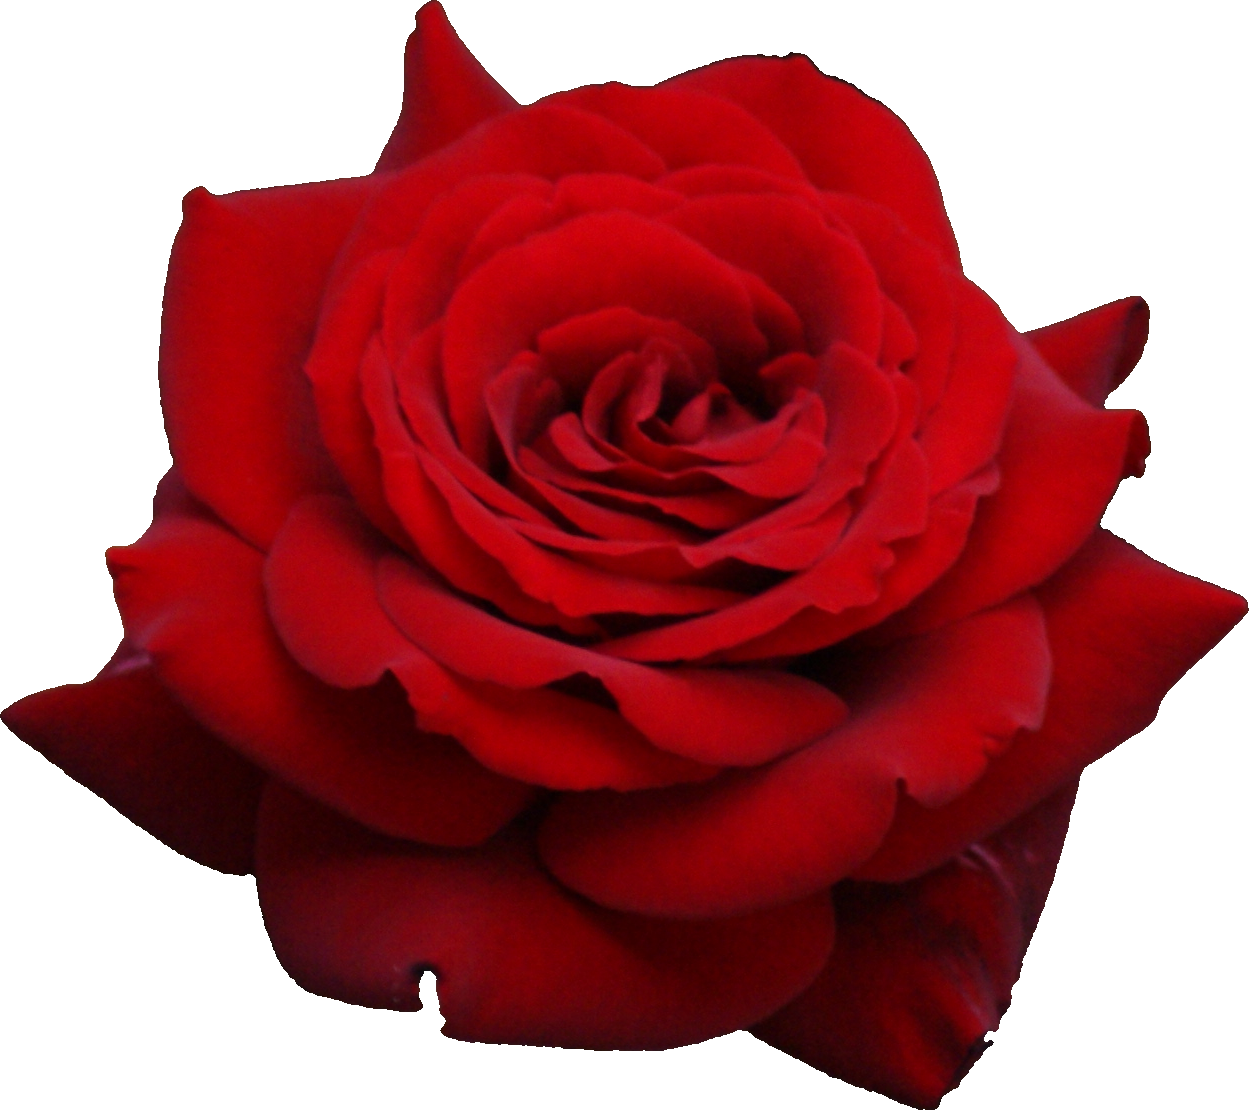 Transparent png images roses. Rose hd pluspng red